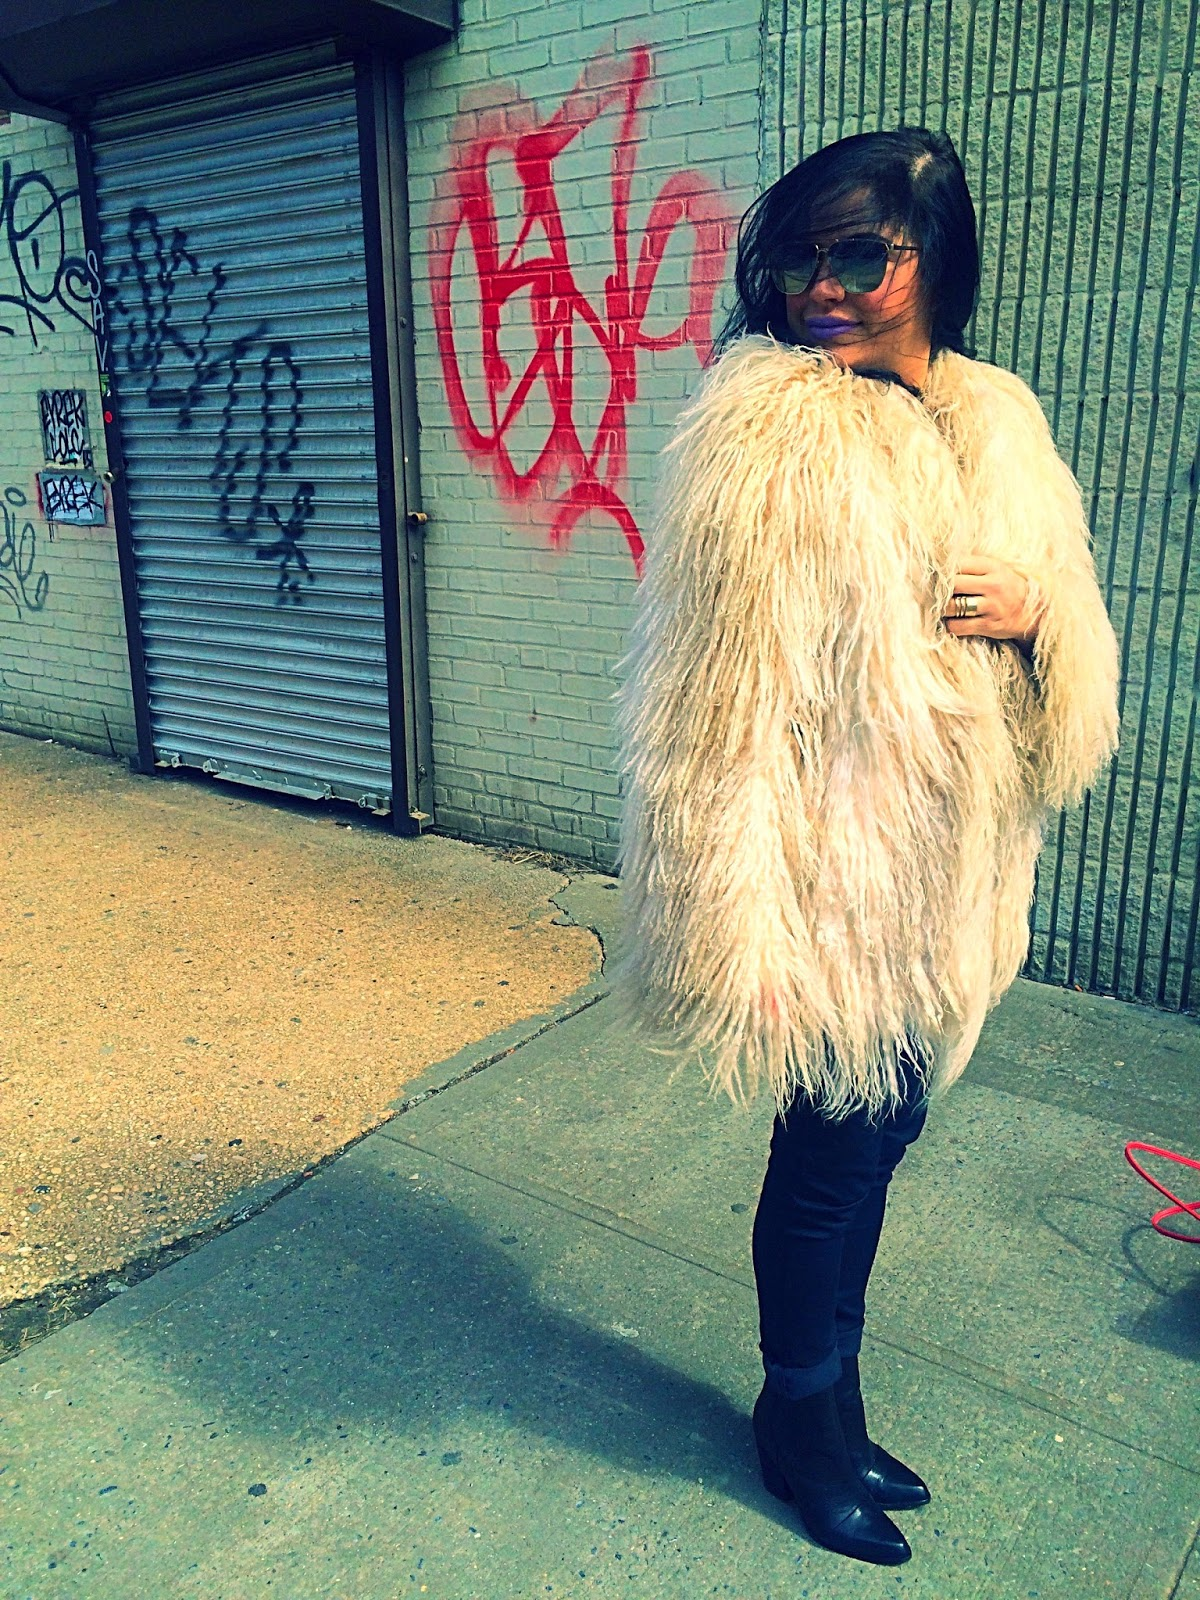 Olivia Inkster vintage coat, New York City fashion blogger, best NYC Brooklyn writer, fashion and style writer, Brooklyn girl look, boho winter outfit, boho coat seventies, almost famous outfit lookalike, where to shop vintage new york